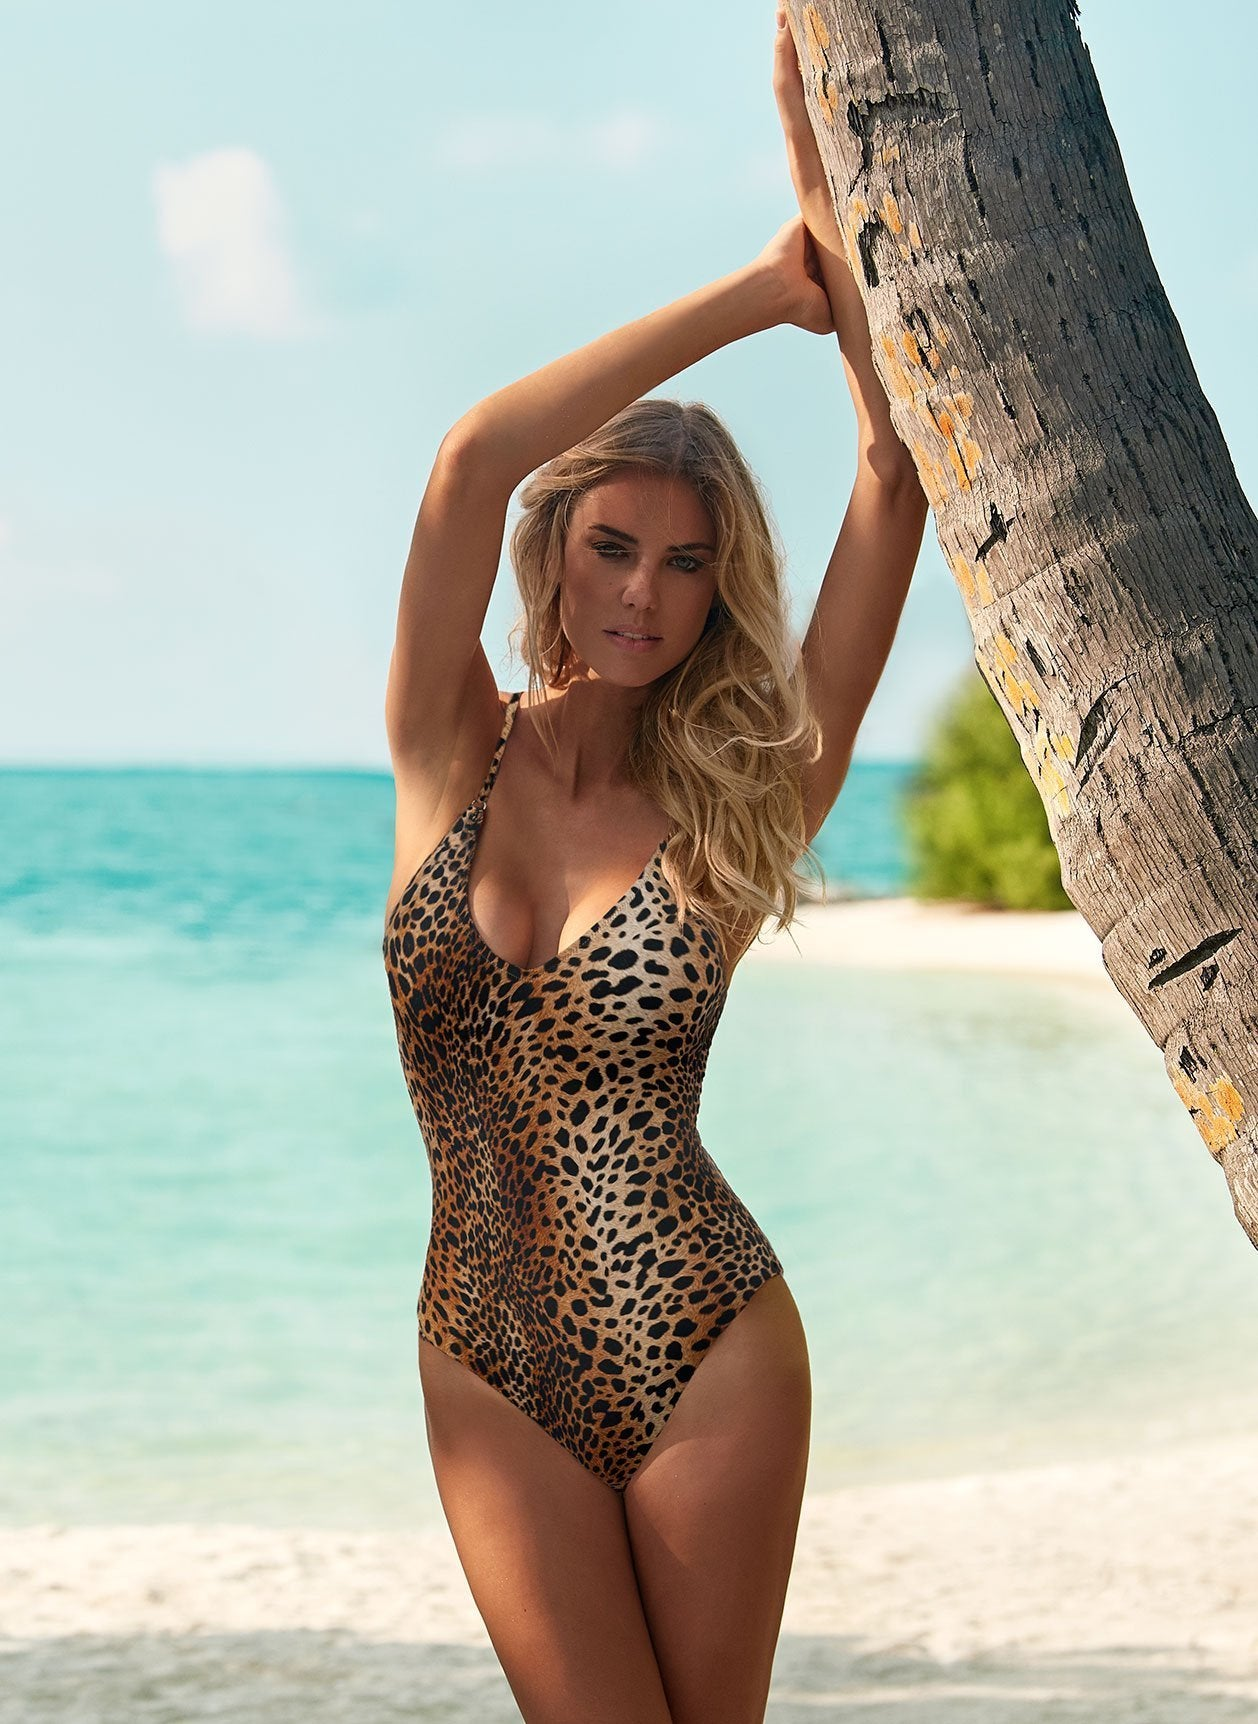 Bora Bora Cheetah Print Swimsuit Lifestyle